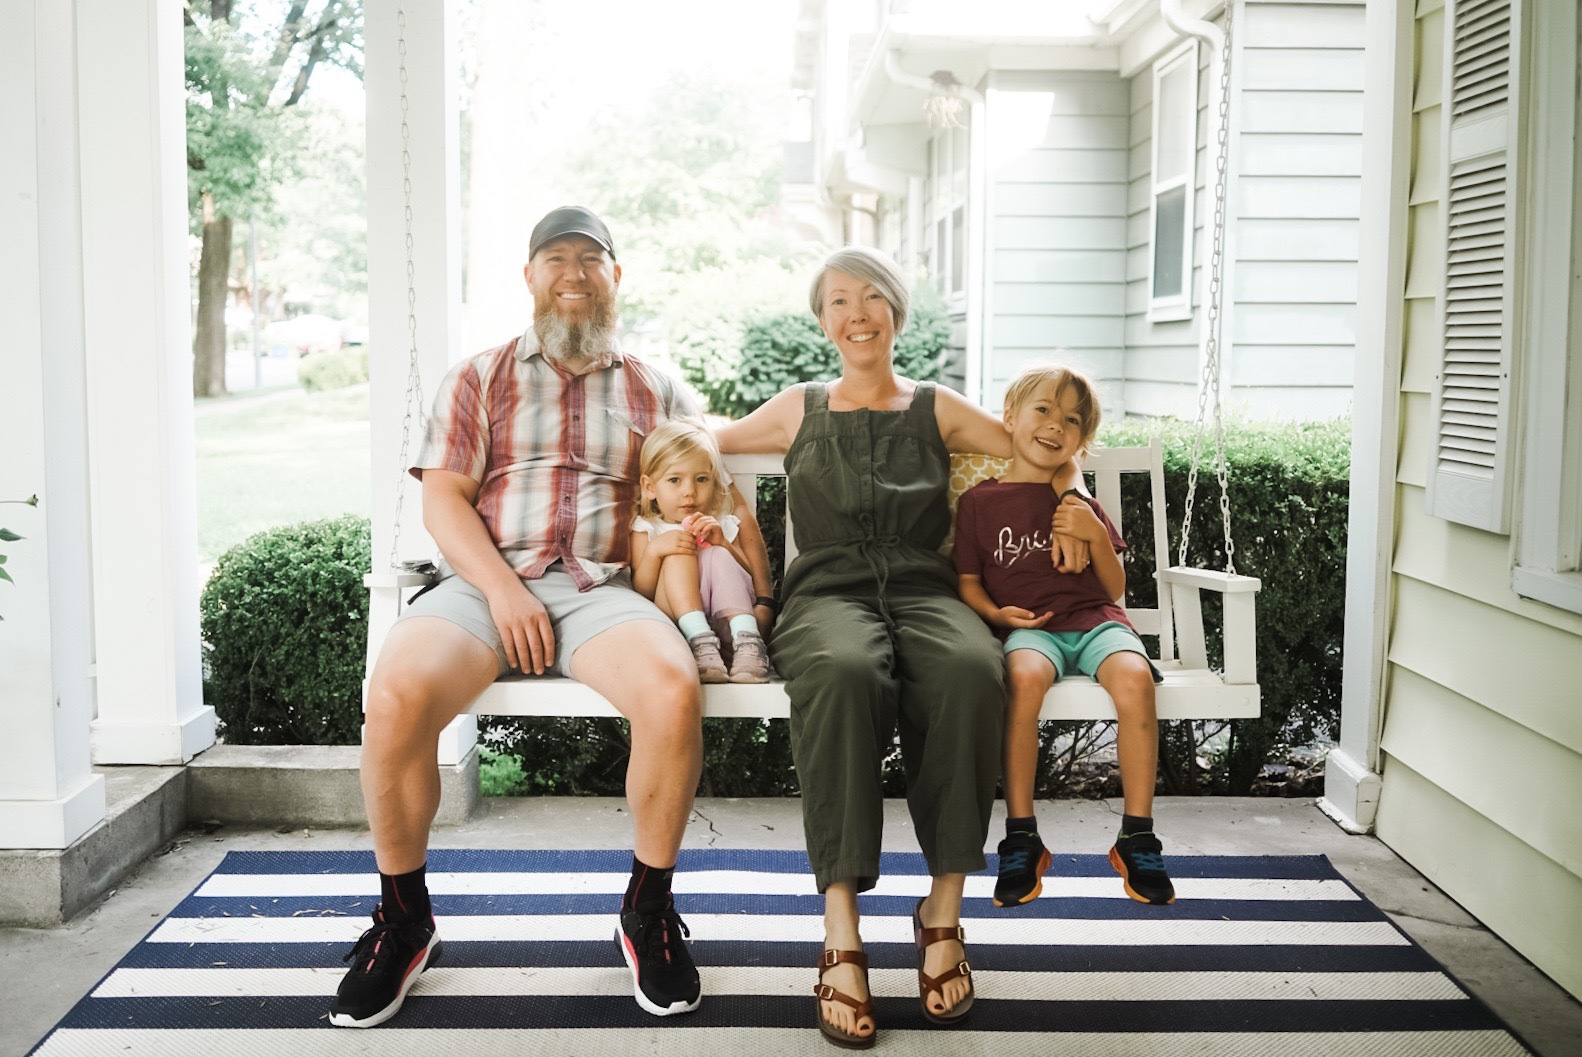 Two adults and two small children sitting on a porch swing